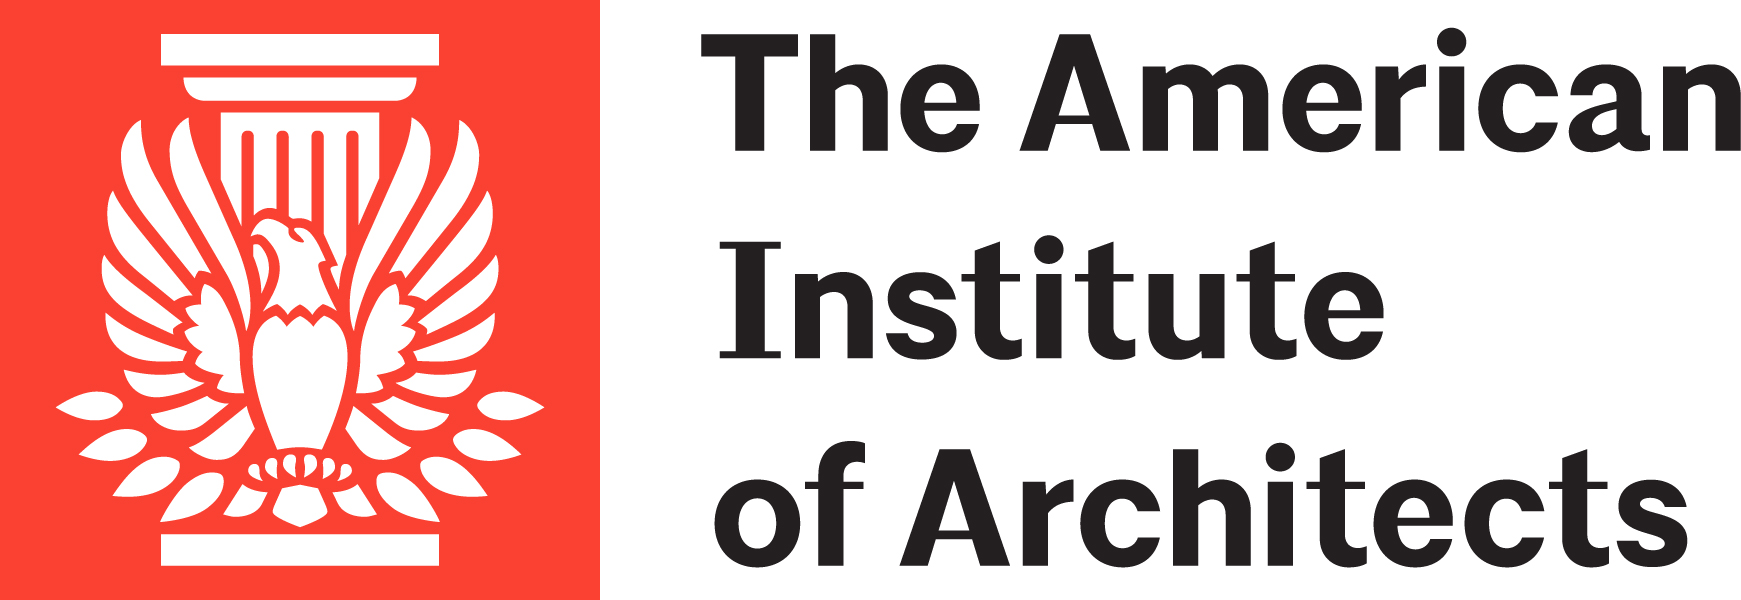 The American Institute of Architects